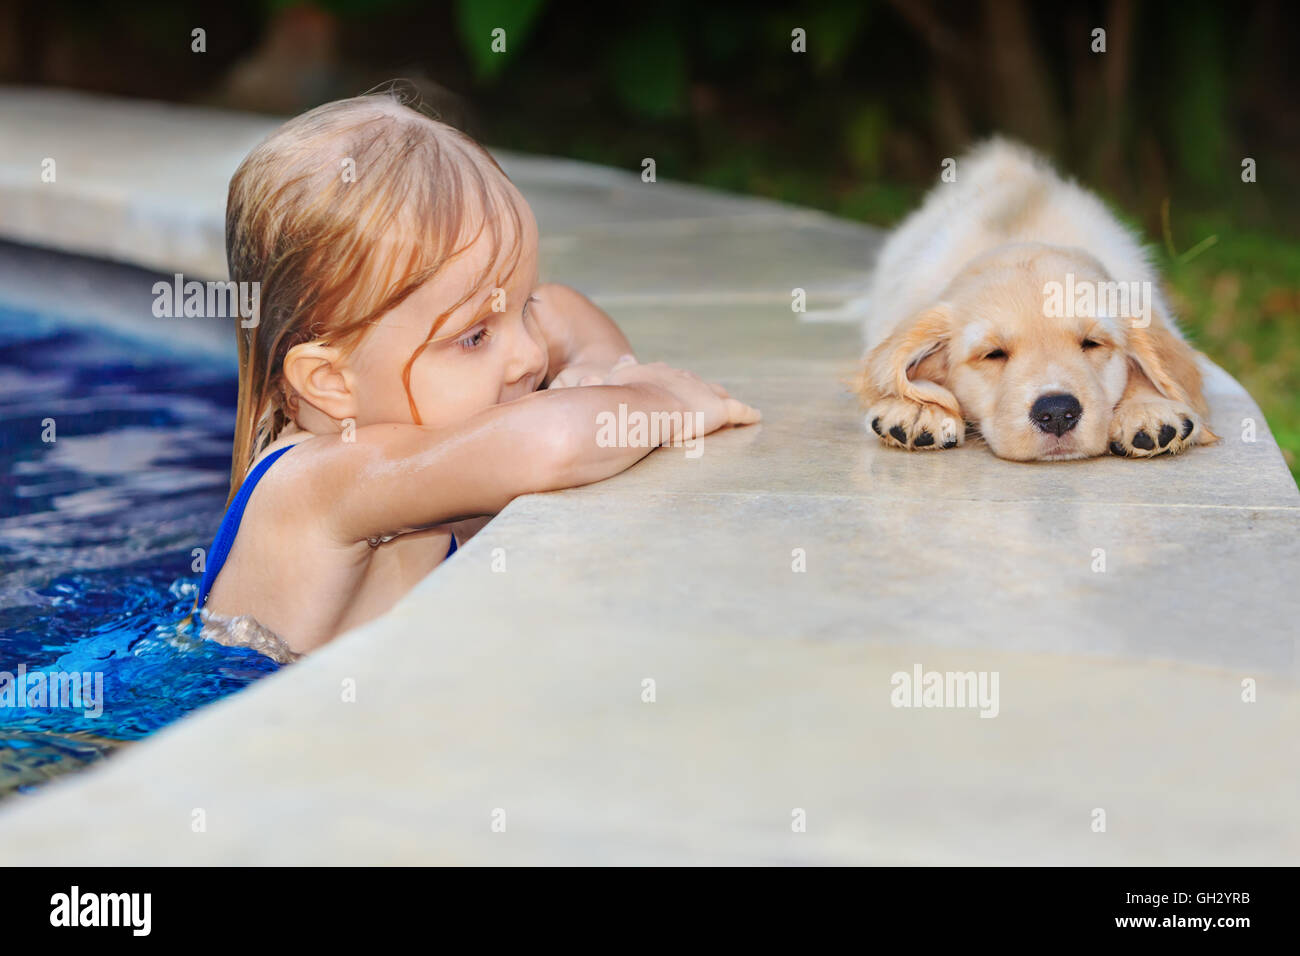 Funny photo of little baby swimming in outdoor pool look at lazy retriever puppy. Children water sports activity - Stock Image